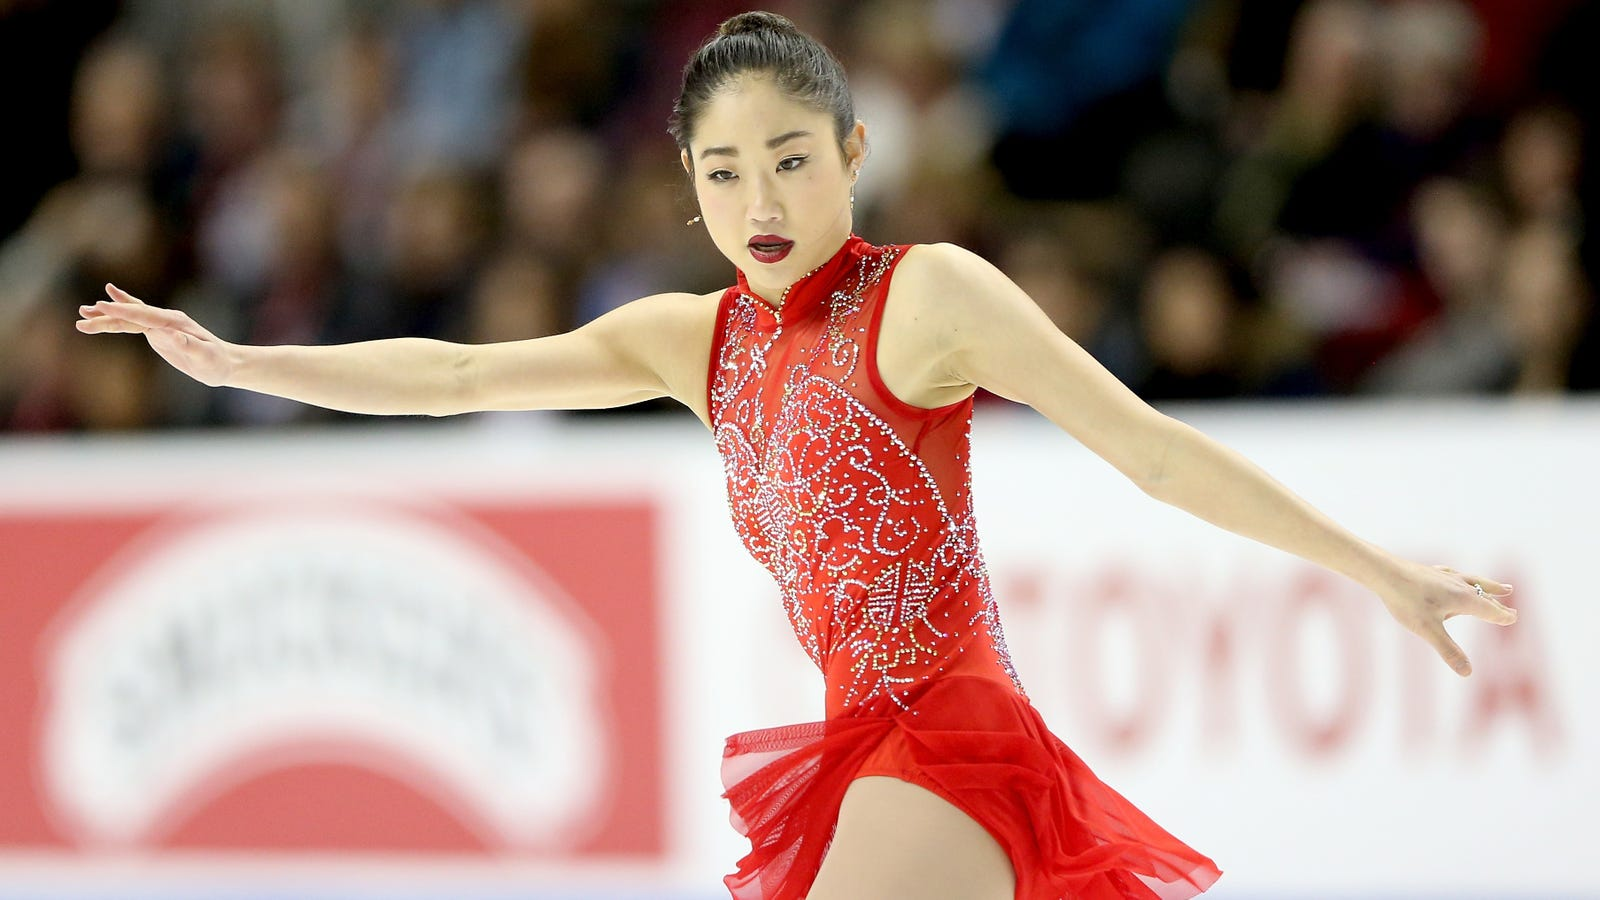 bwjszsioiox7roqh6kvj - Mirai Nagasu Just Became the First American Woman to Land a Triple Axel in the Winter Olympics